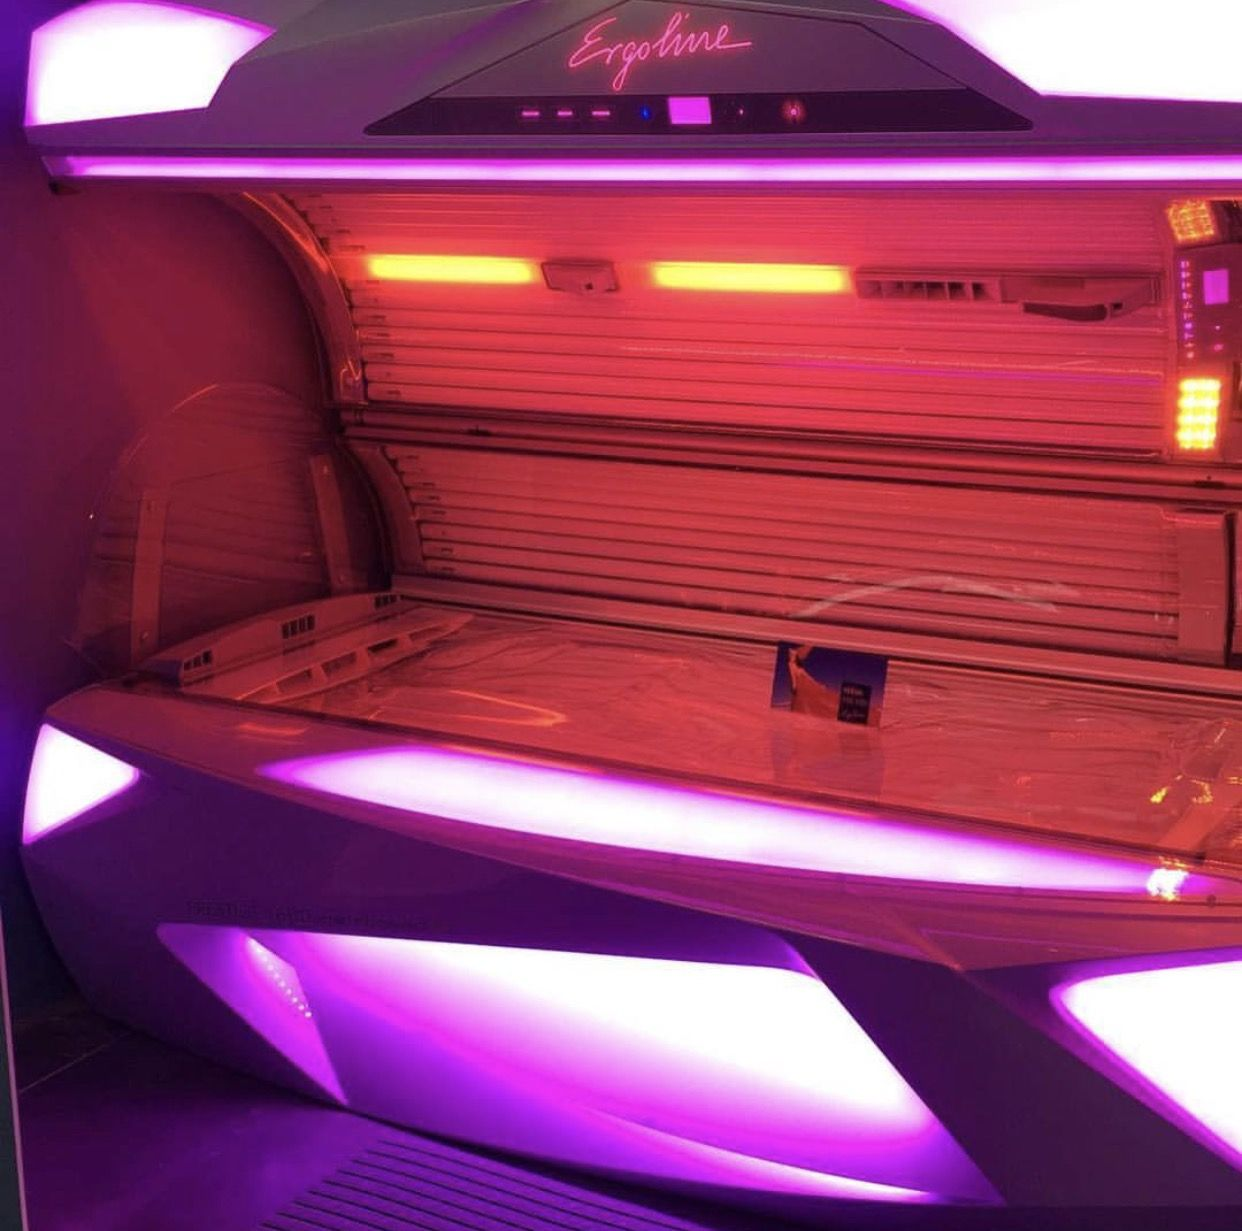 Ergoline tanning bed (With images) Tanning bed, Sunless